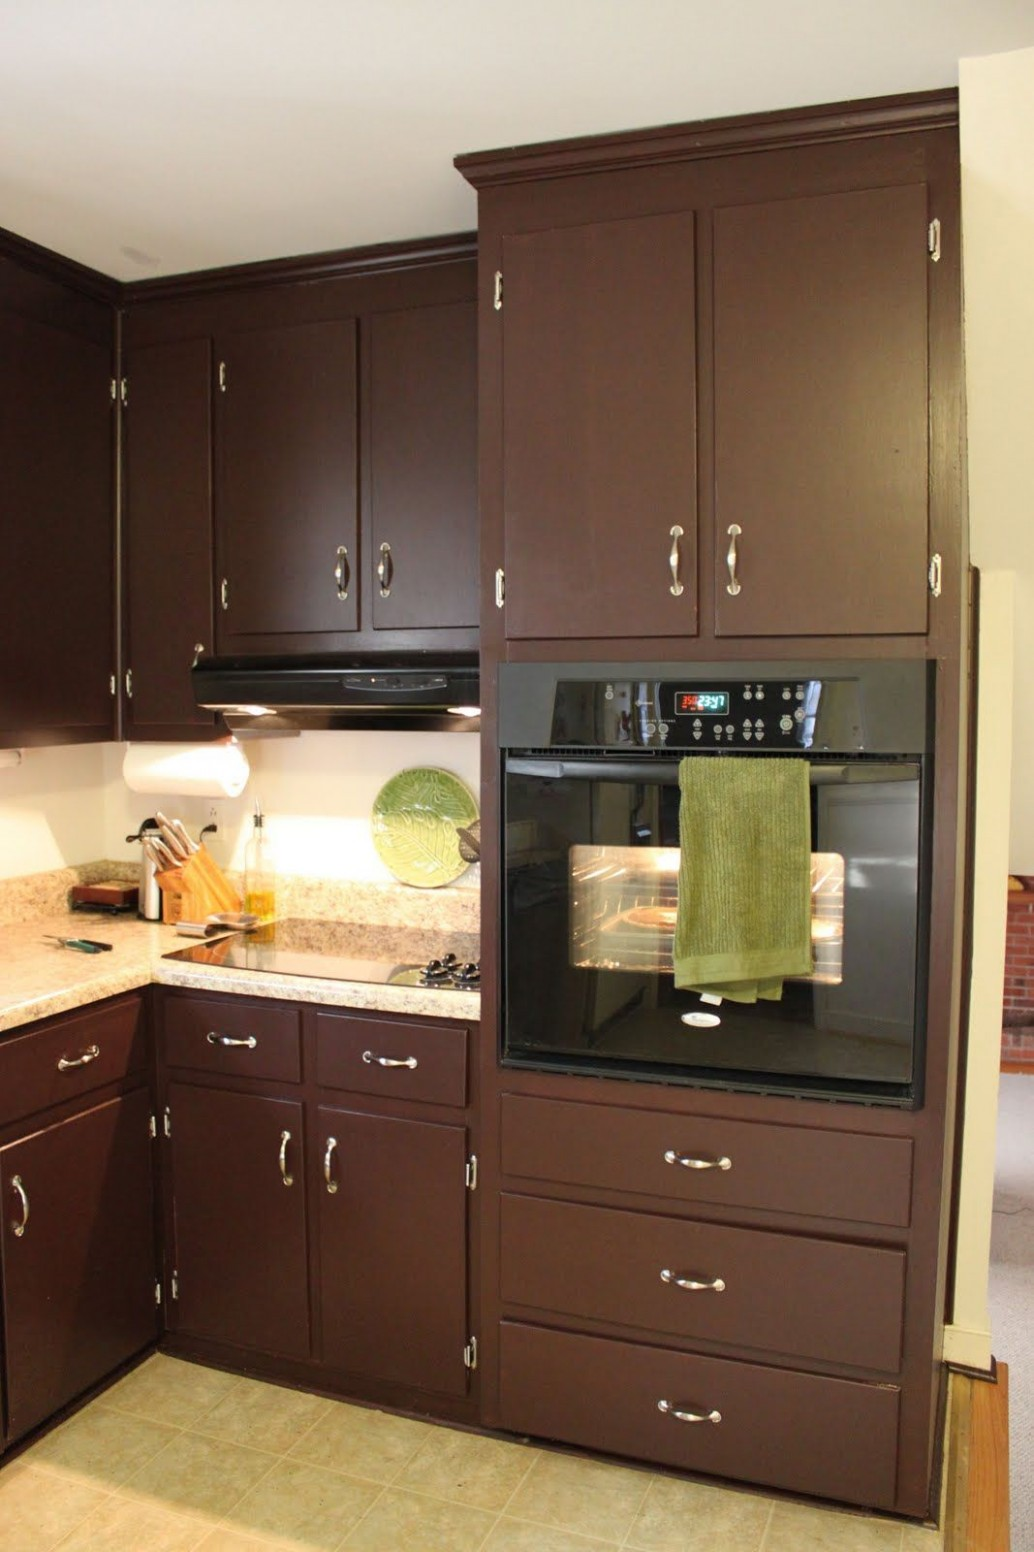 Two Tone Kitchen Cabinets Ideas Concept, with modern door design  - Brown Colored Kitchen Cabinets